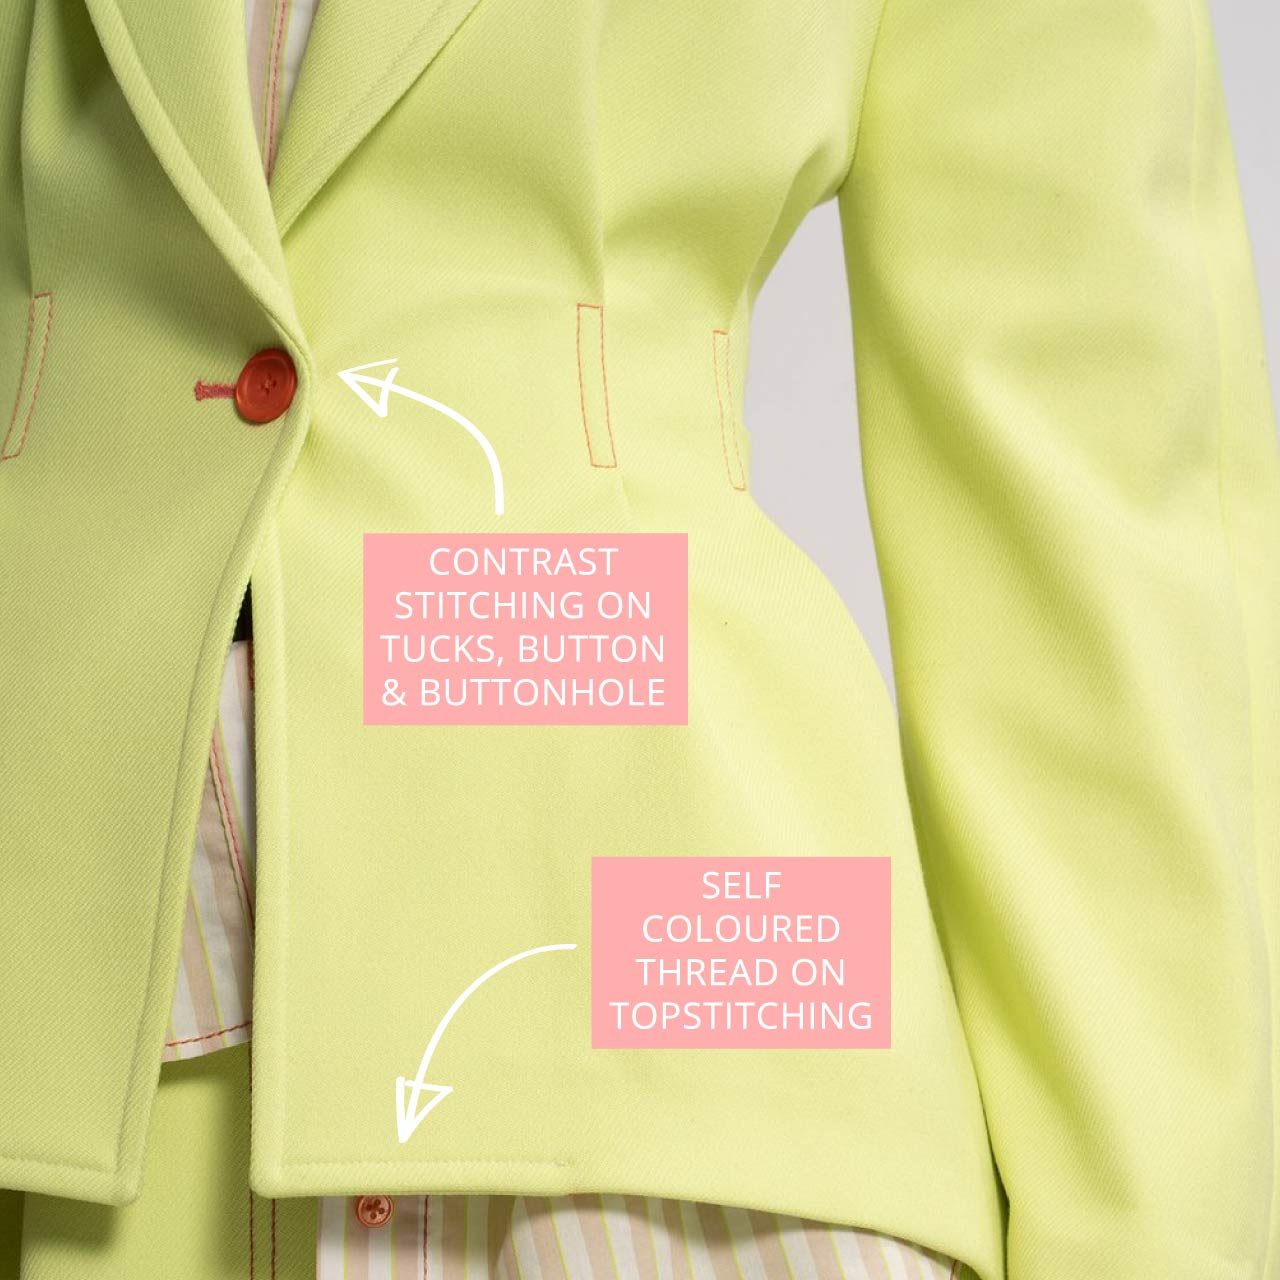 Detail of Sies Marjan Jacket from AW19. Featuring contrast stitching on tucks, button and buttonhole.